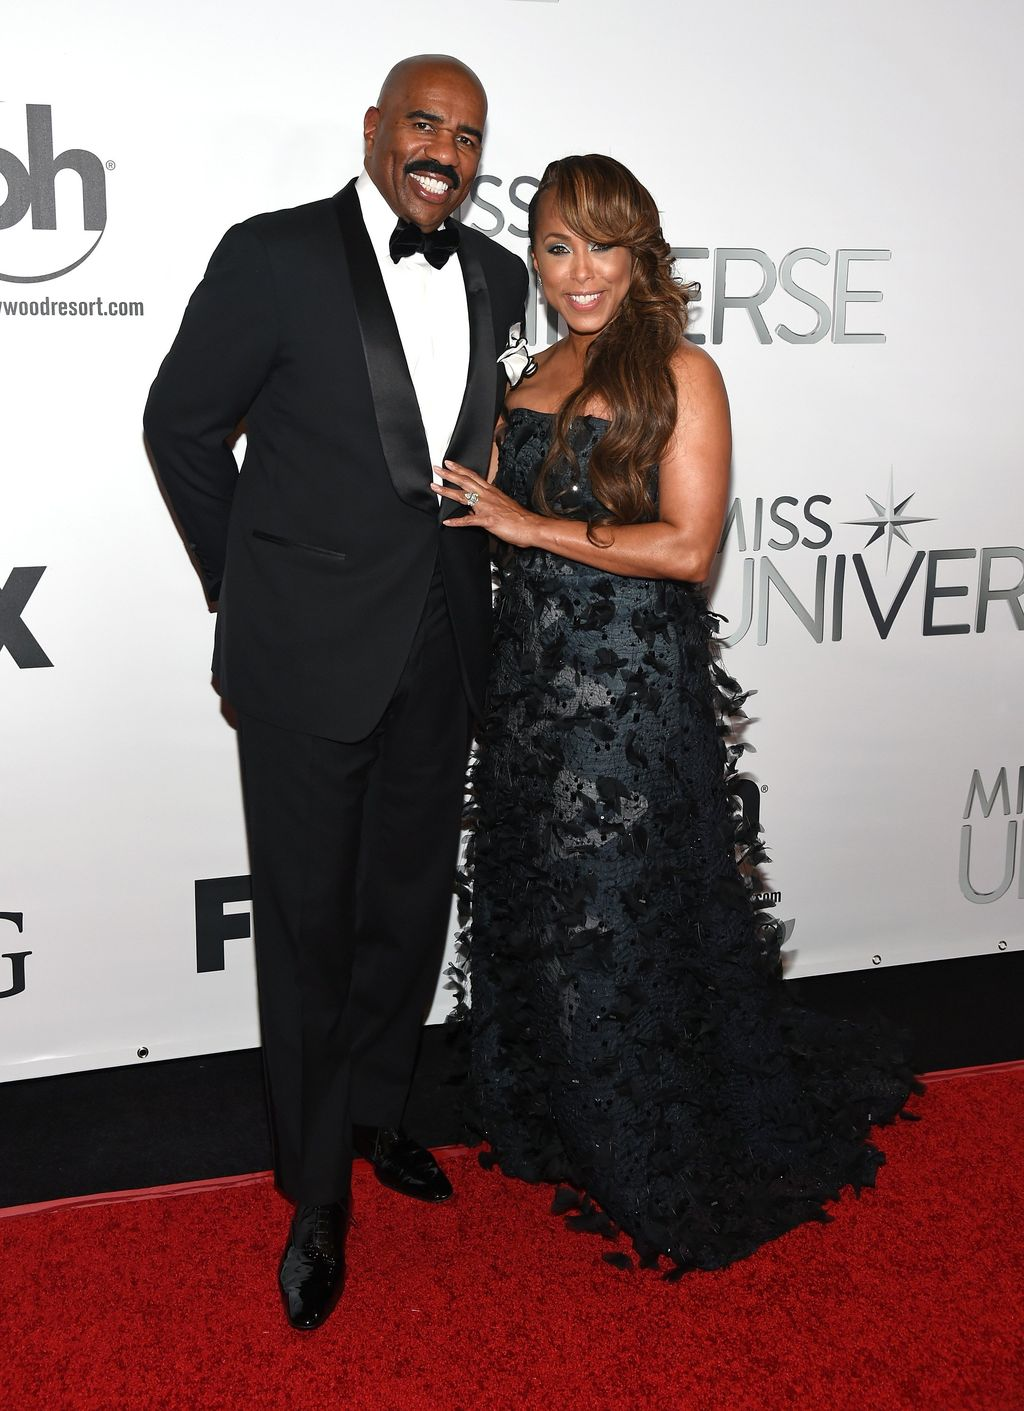 Steve & Marjorie Harvey at the 2015 Miss Universe Pageant on December 20, 2015 in Las Vegas | Photo: Getty Images